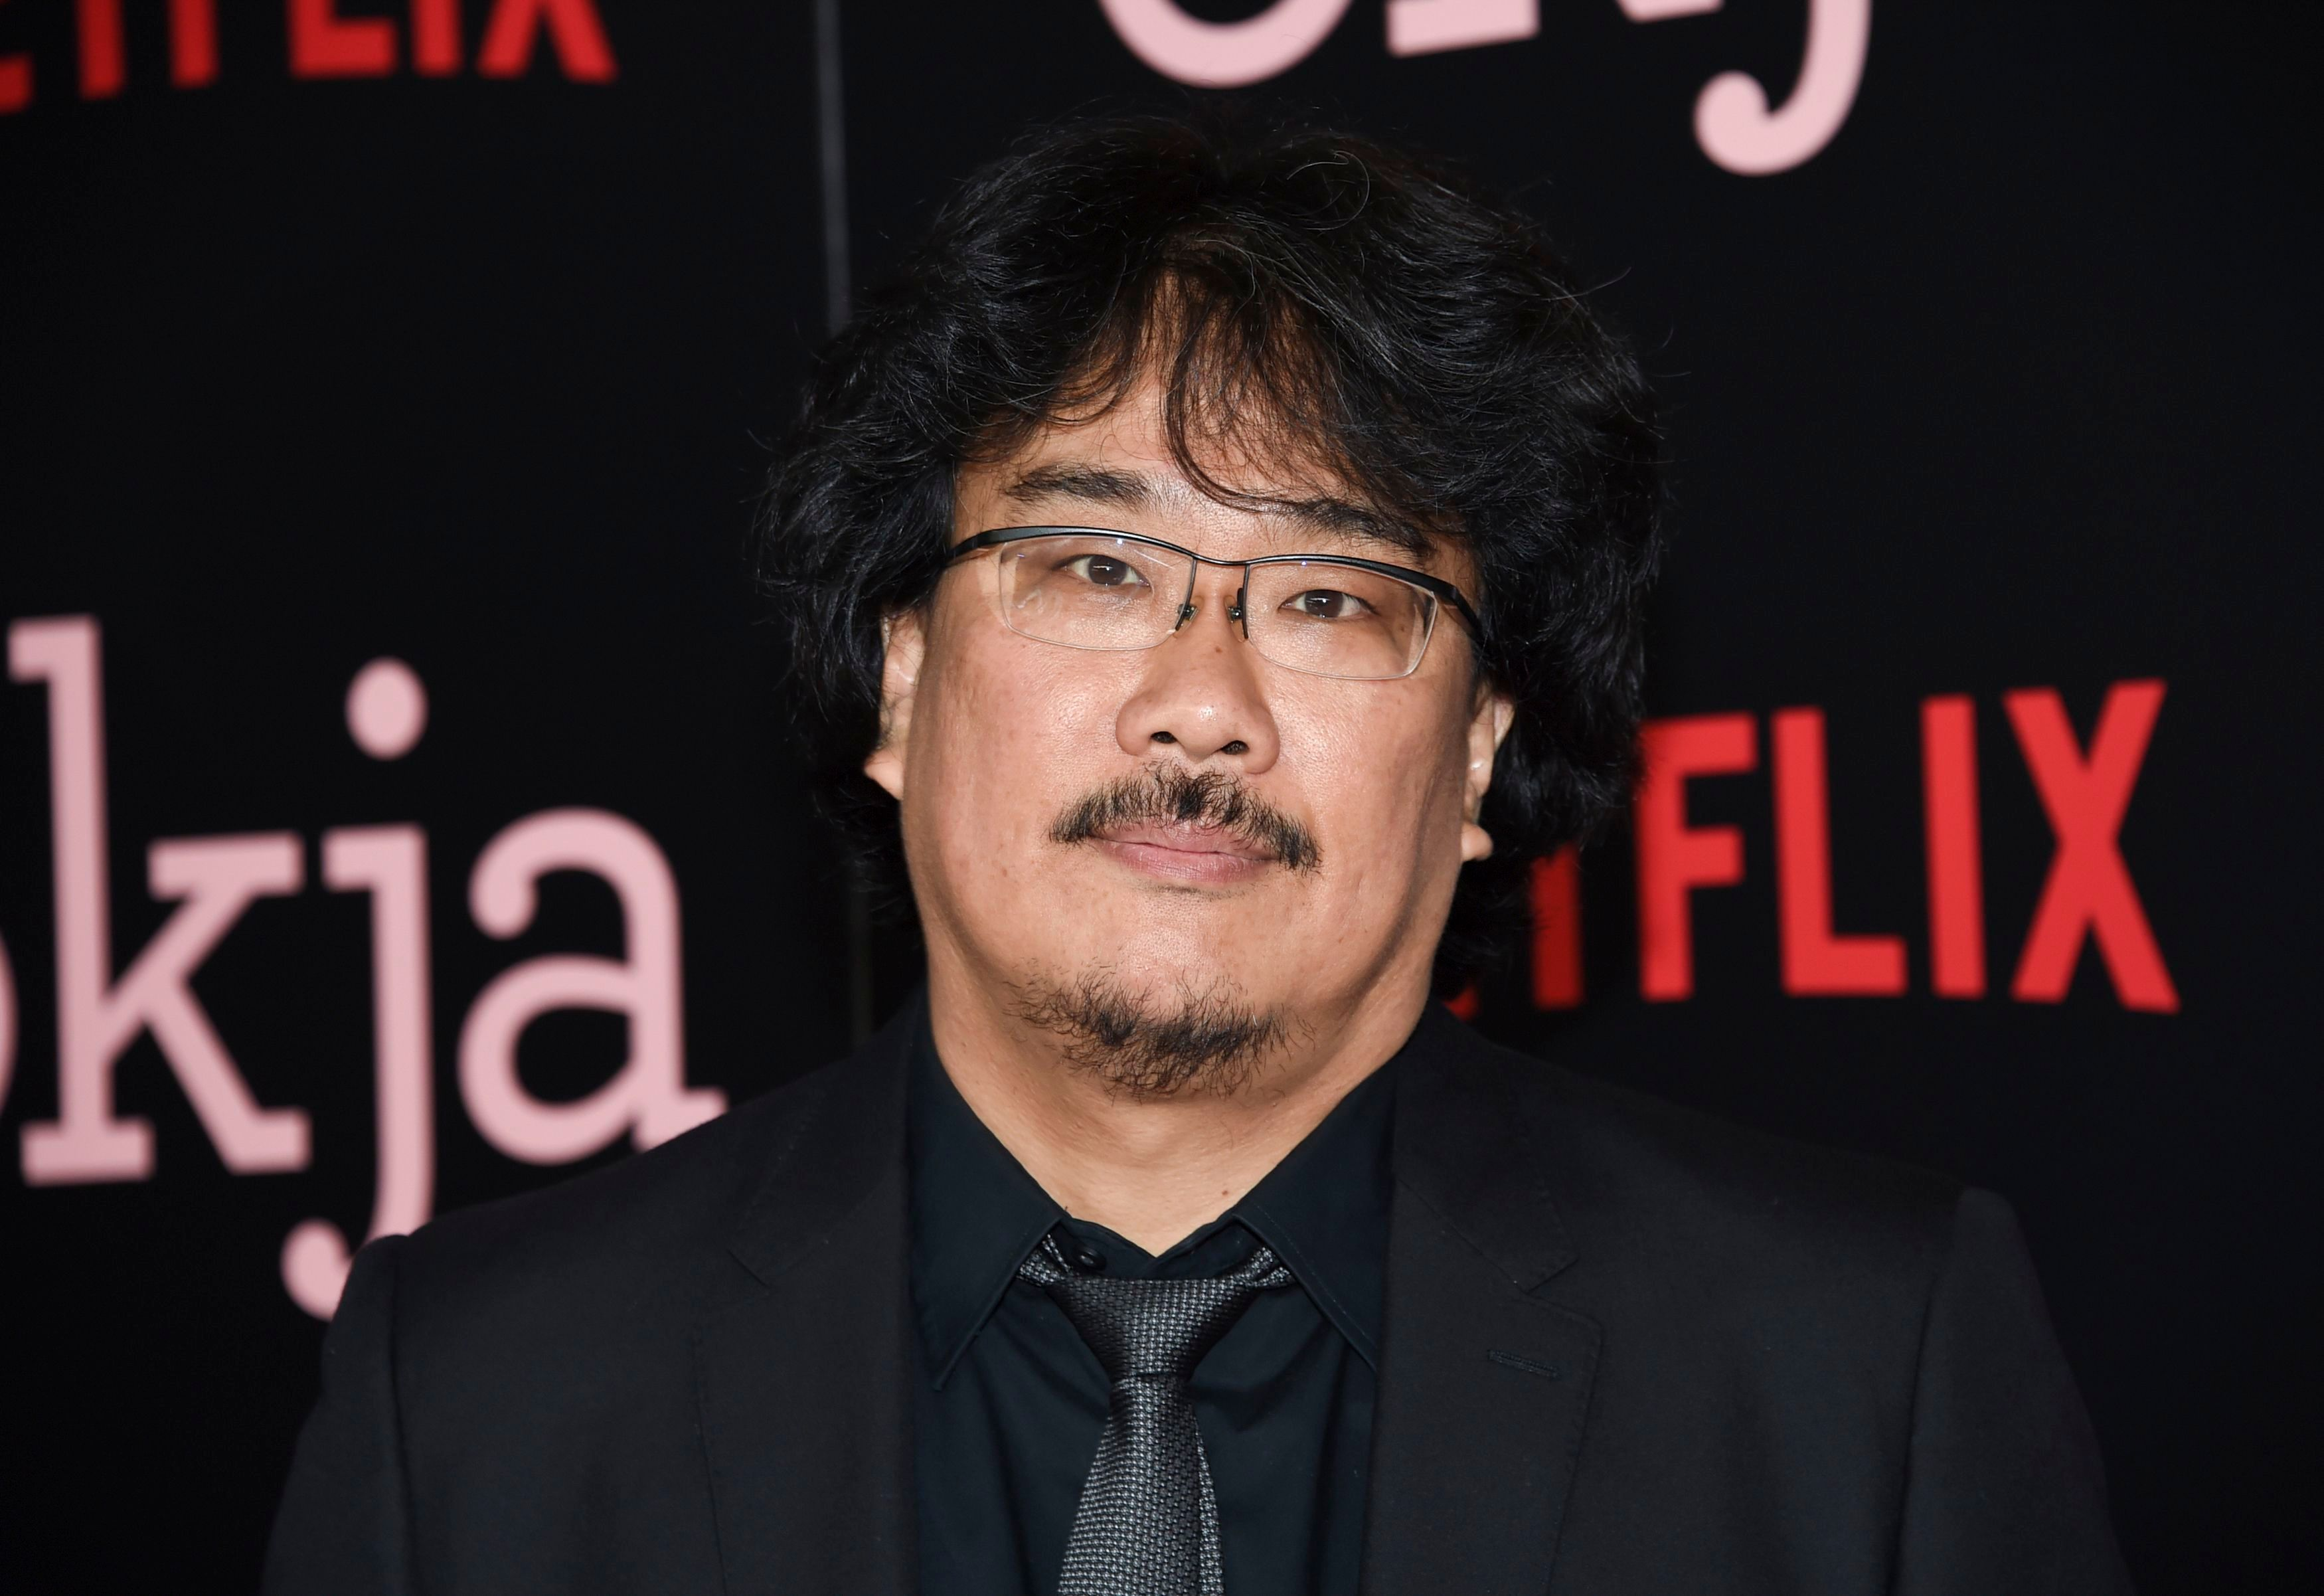 Bong Joon Ho Wants to Direct 'Mindhunter,' Reveals Connection to David Fincher Series